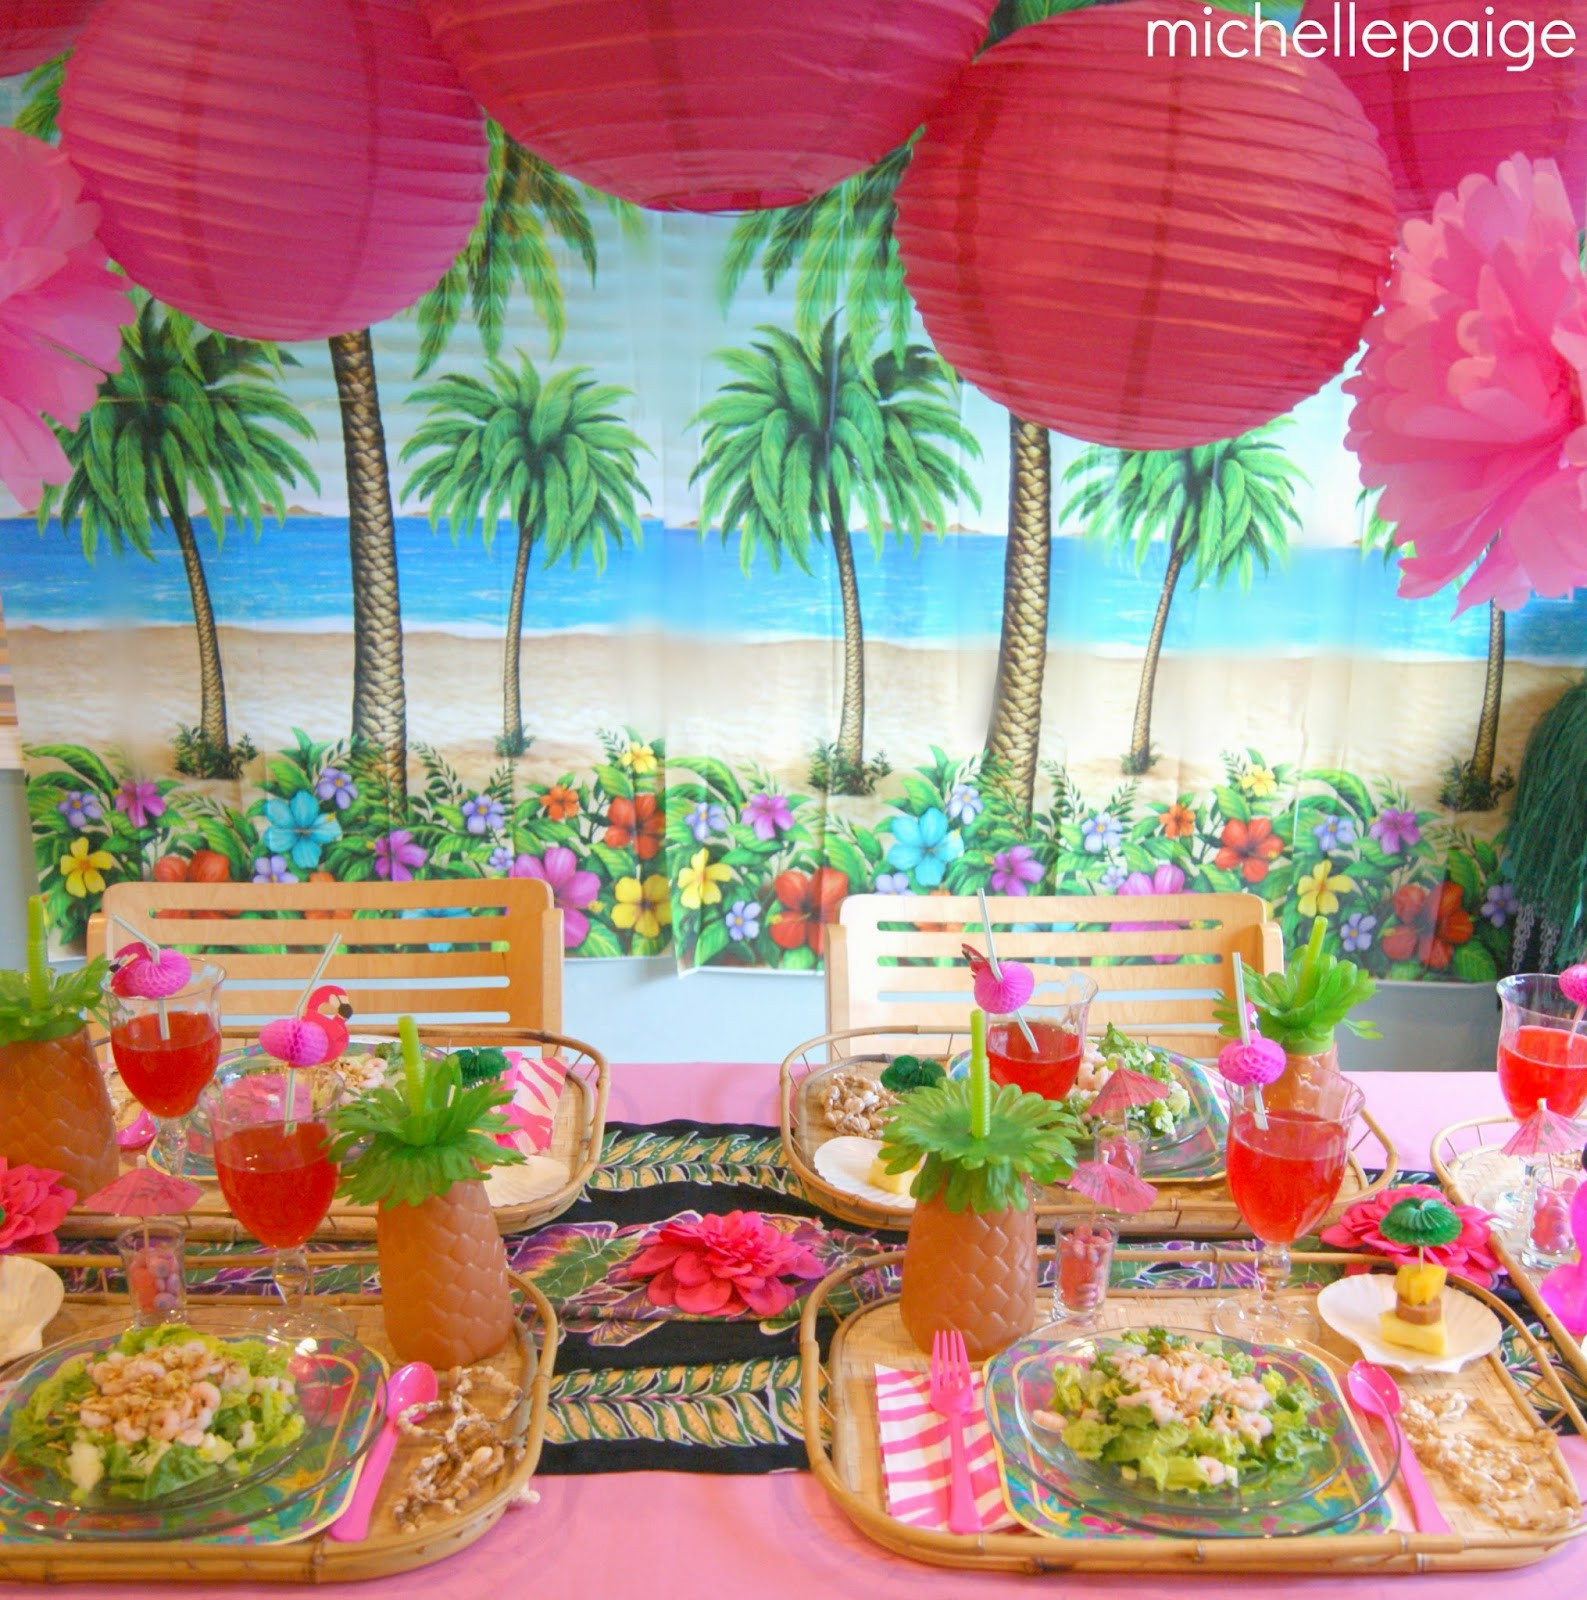 Best ideas about Hawaiian Birthday Decorations . Save or Pin michelle paige blogs Hawaiian Birthday Party Now.